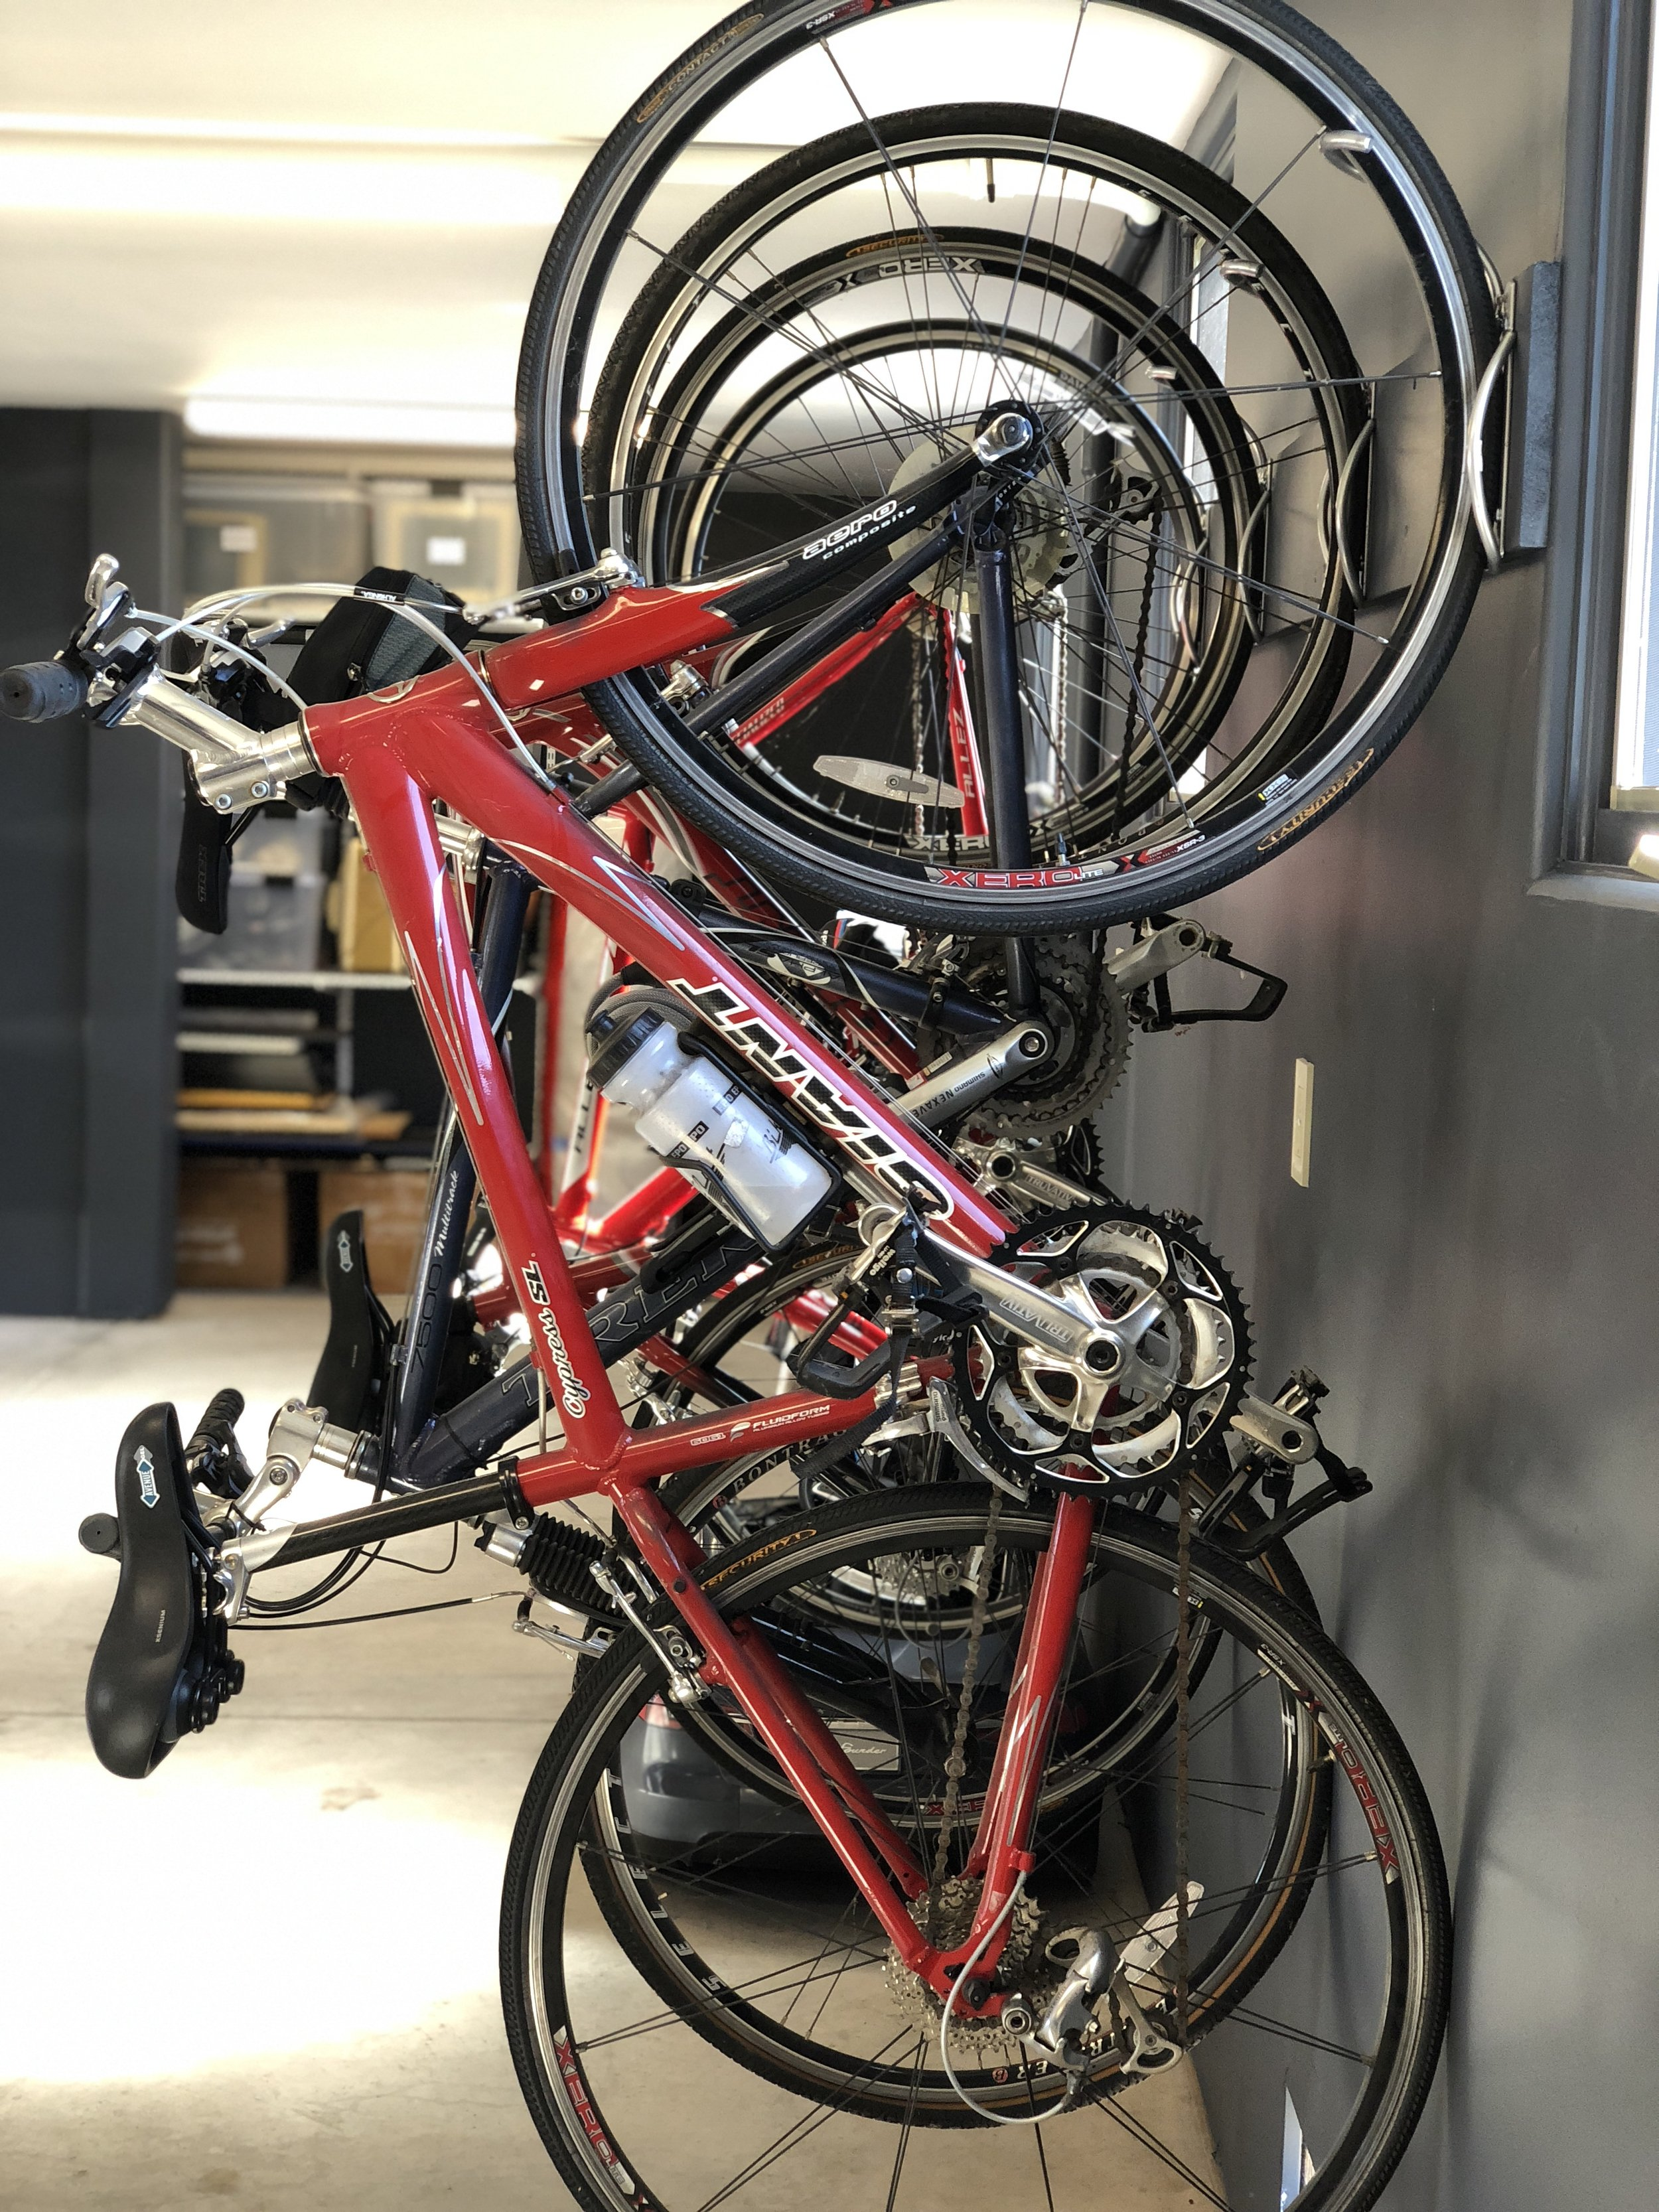 Custom bike storage solution for your garage